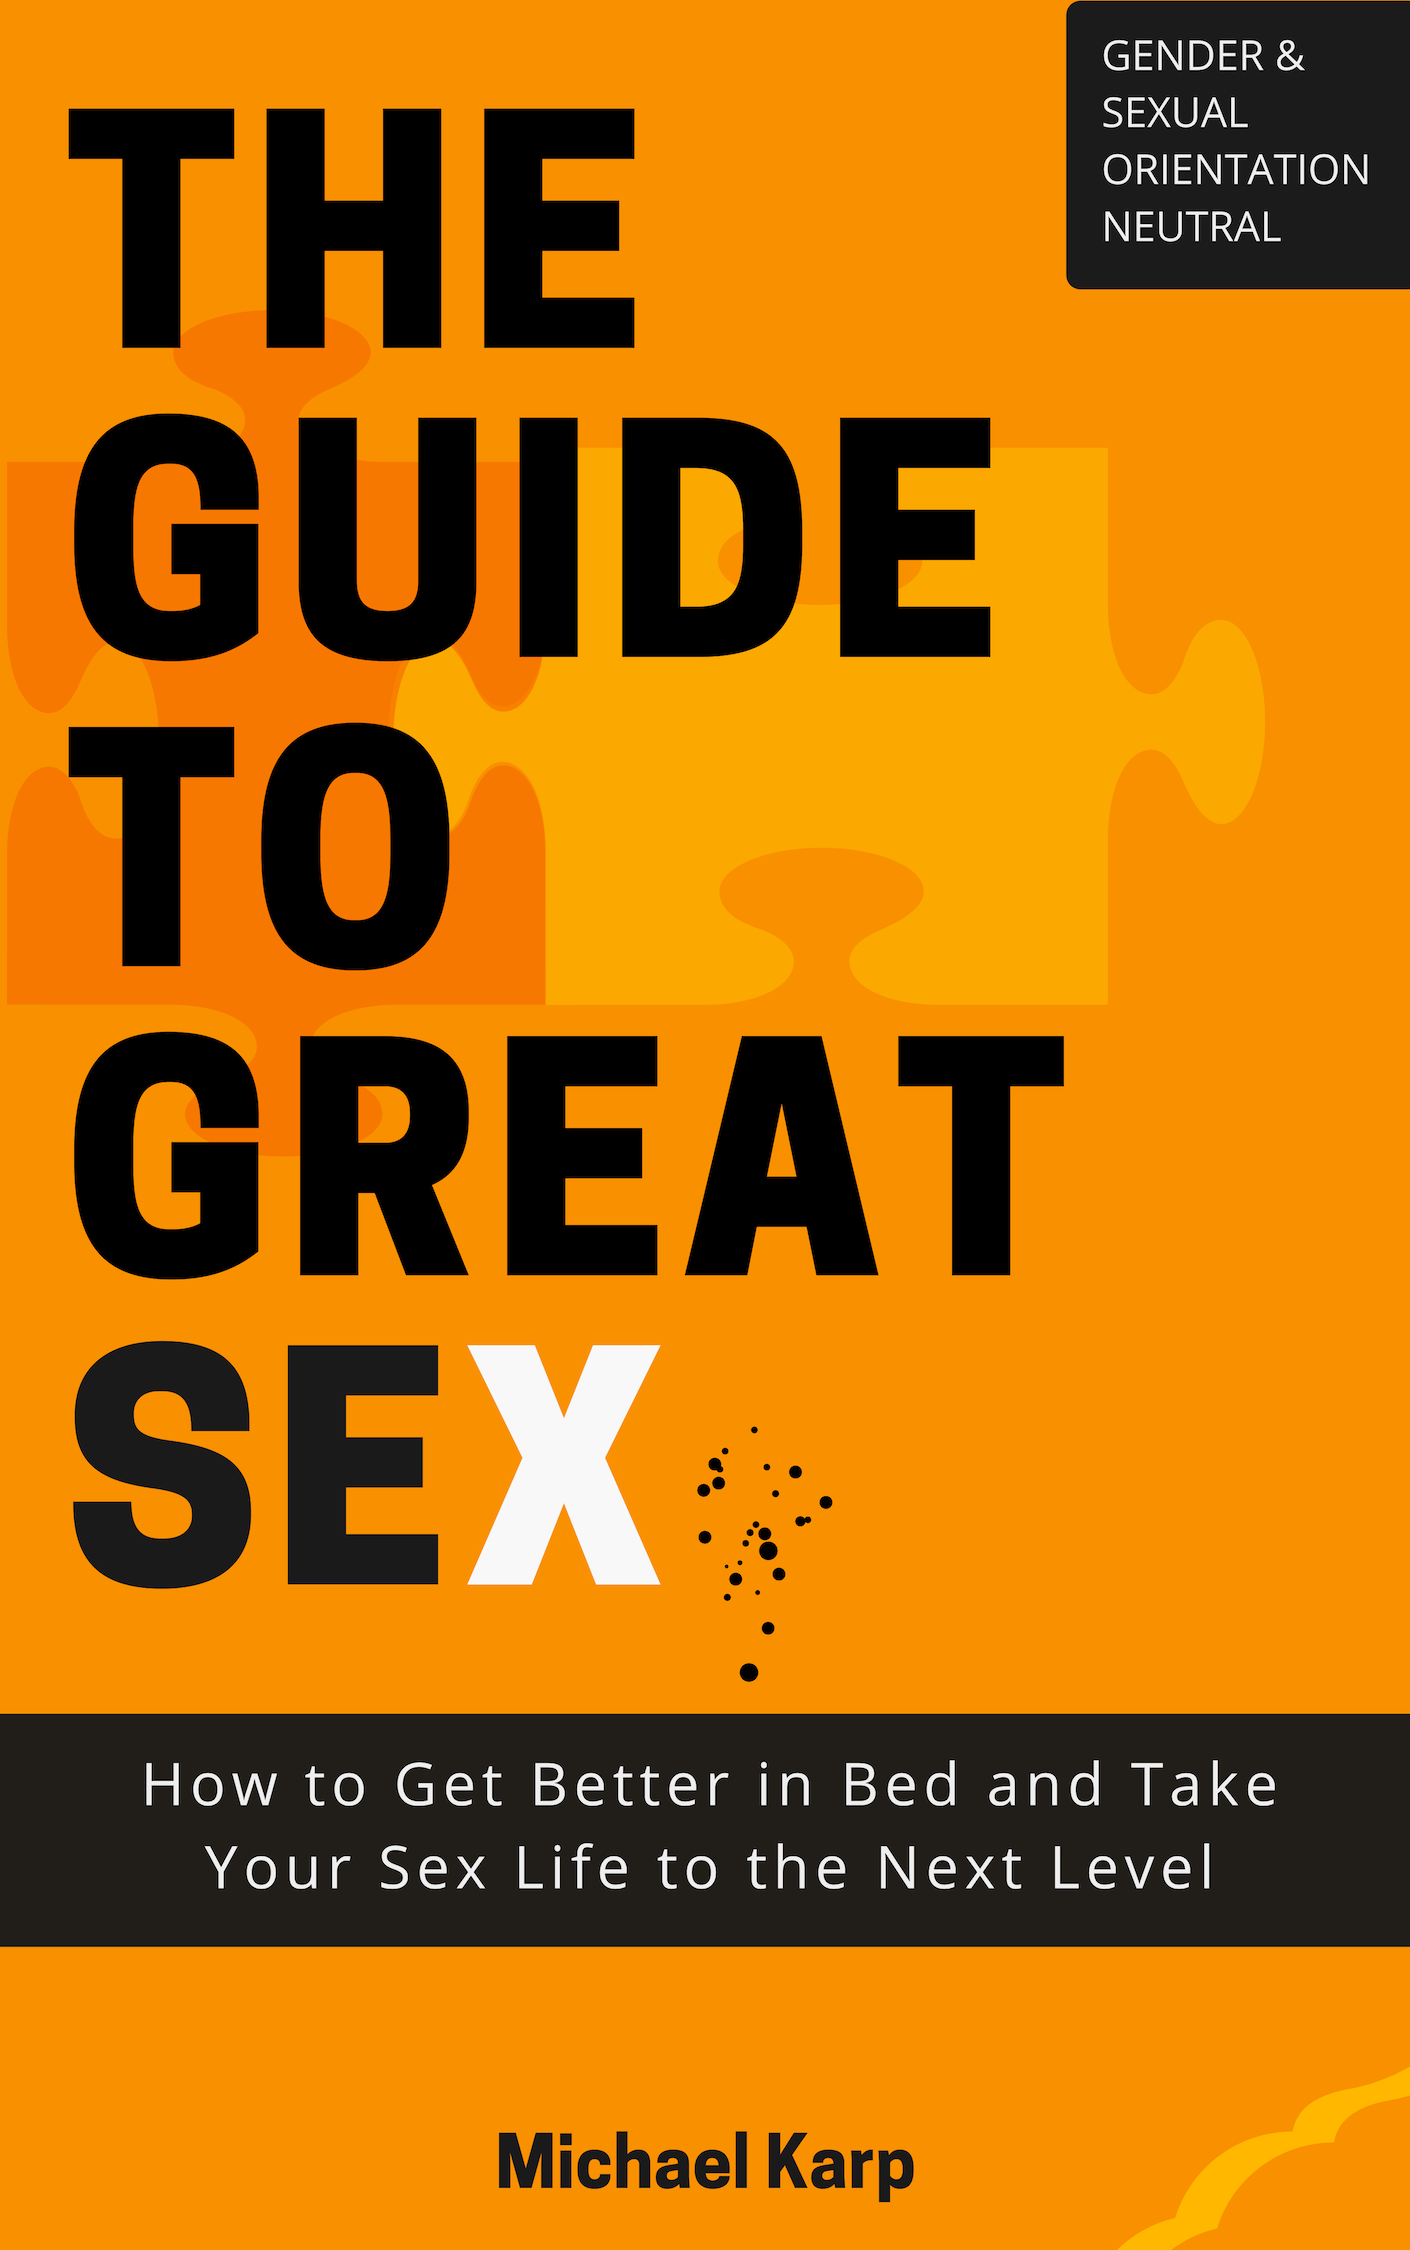 Eating certain foods, herbs, and fish for better sex life